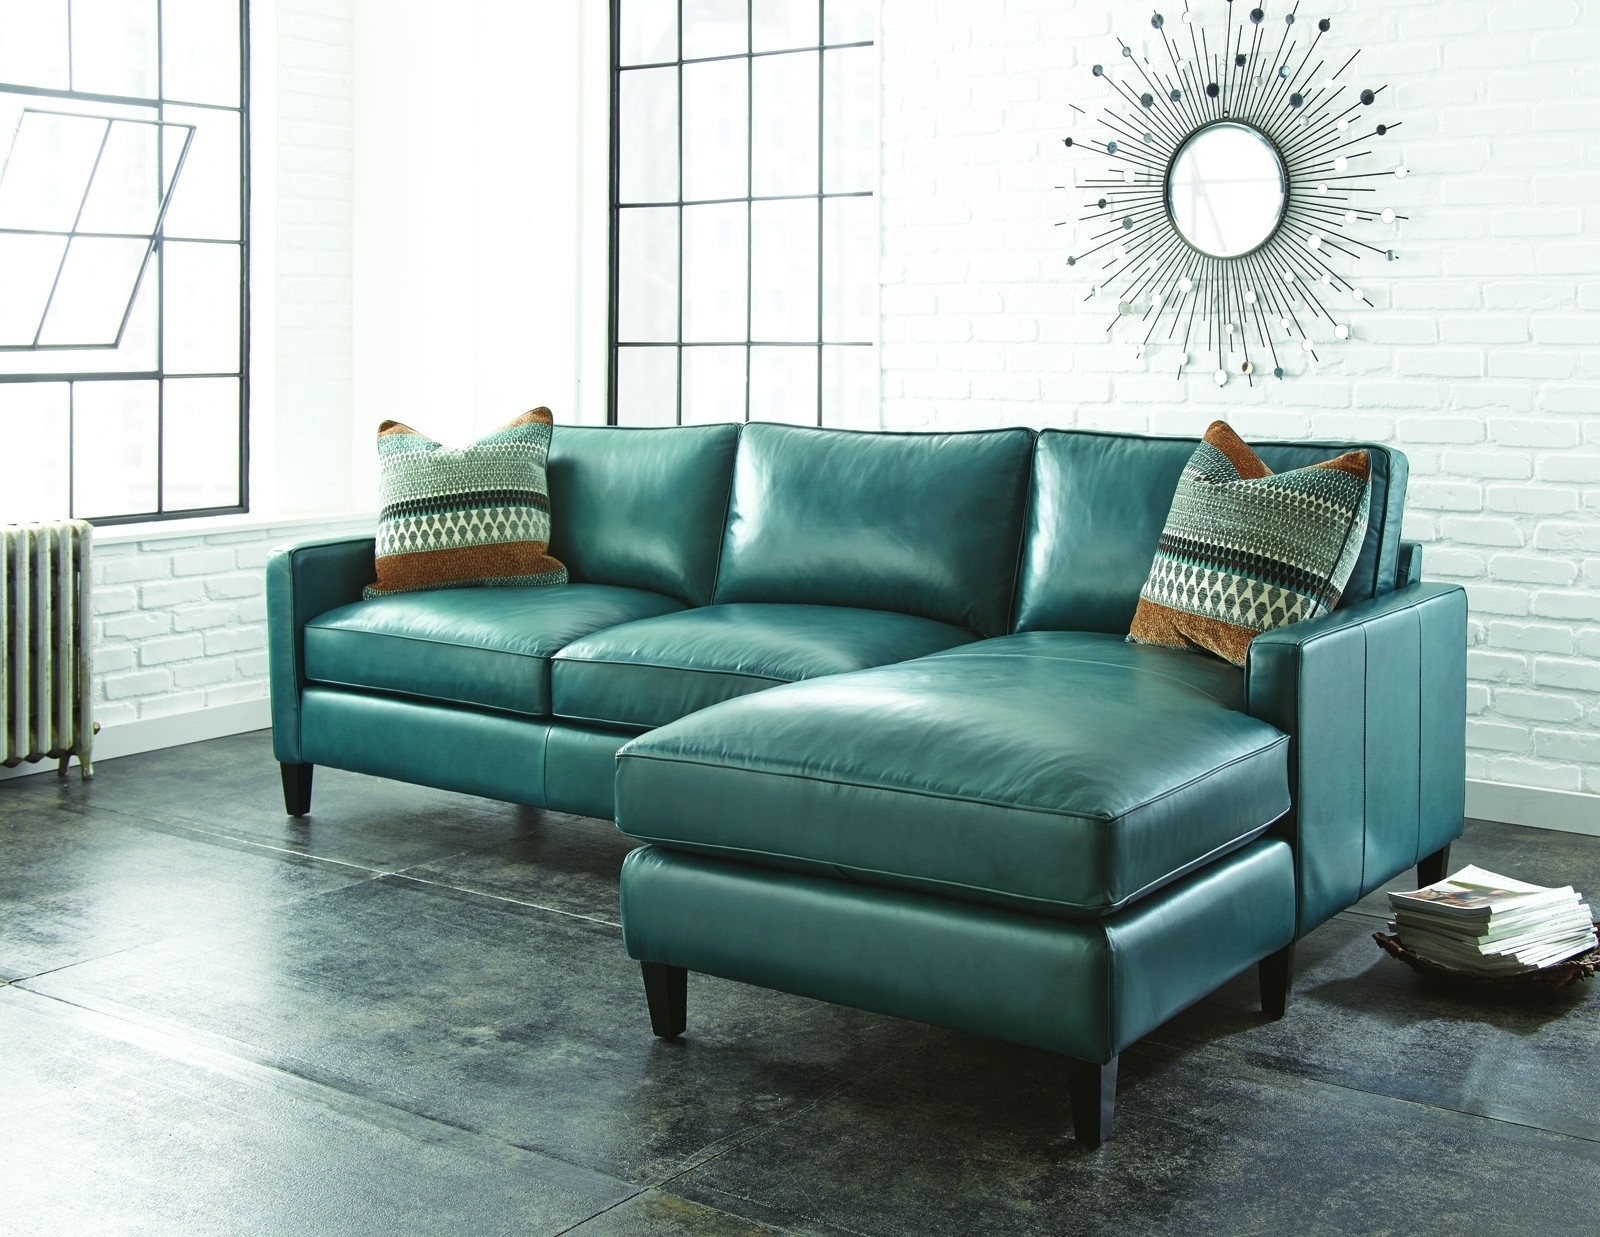 Famous Turquoise Sofas Pertaining To Turquoise Leather Sectional Sofa For Living Room With Sun Wall (View 14 of 20)